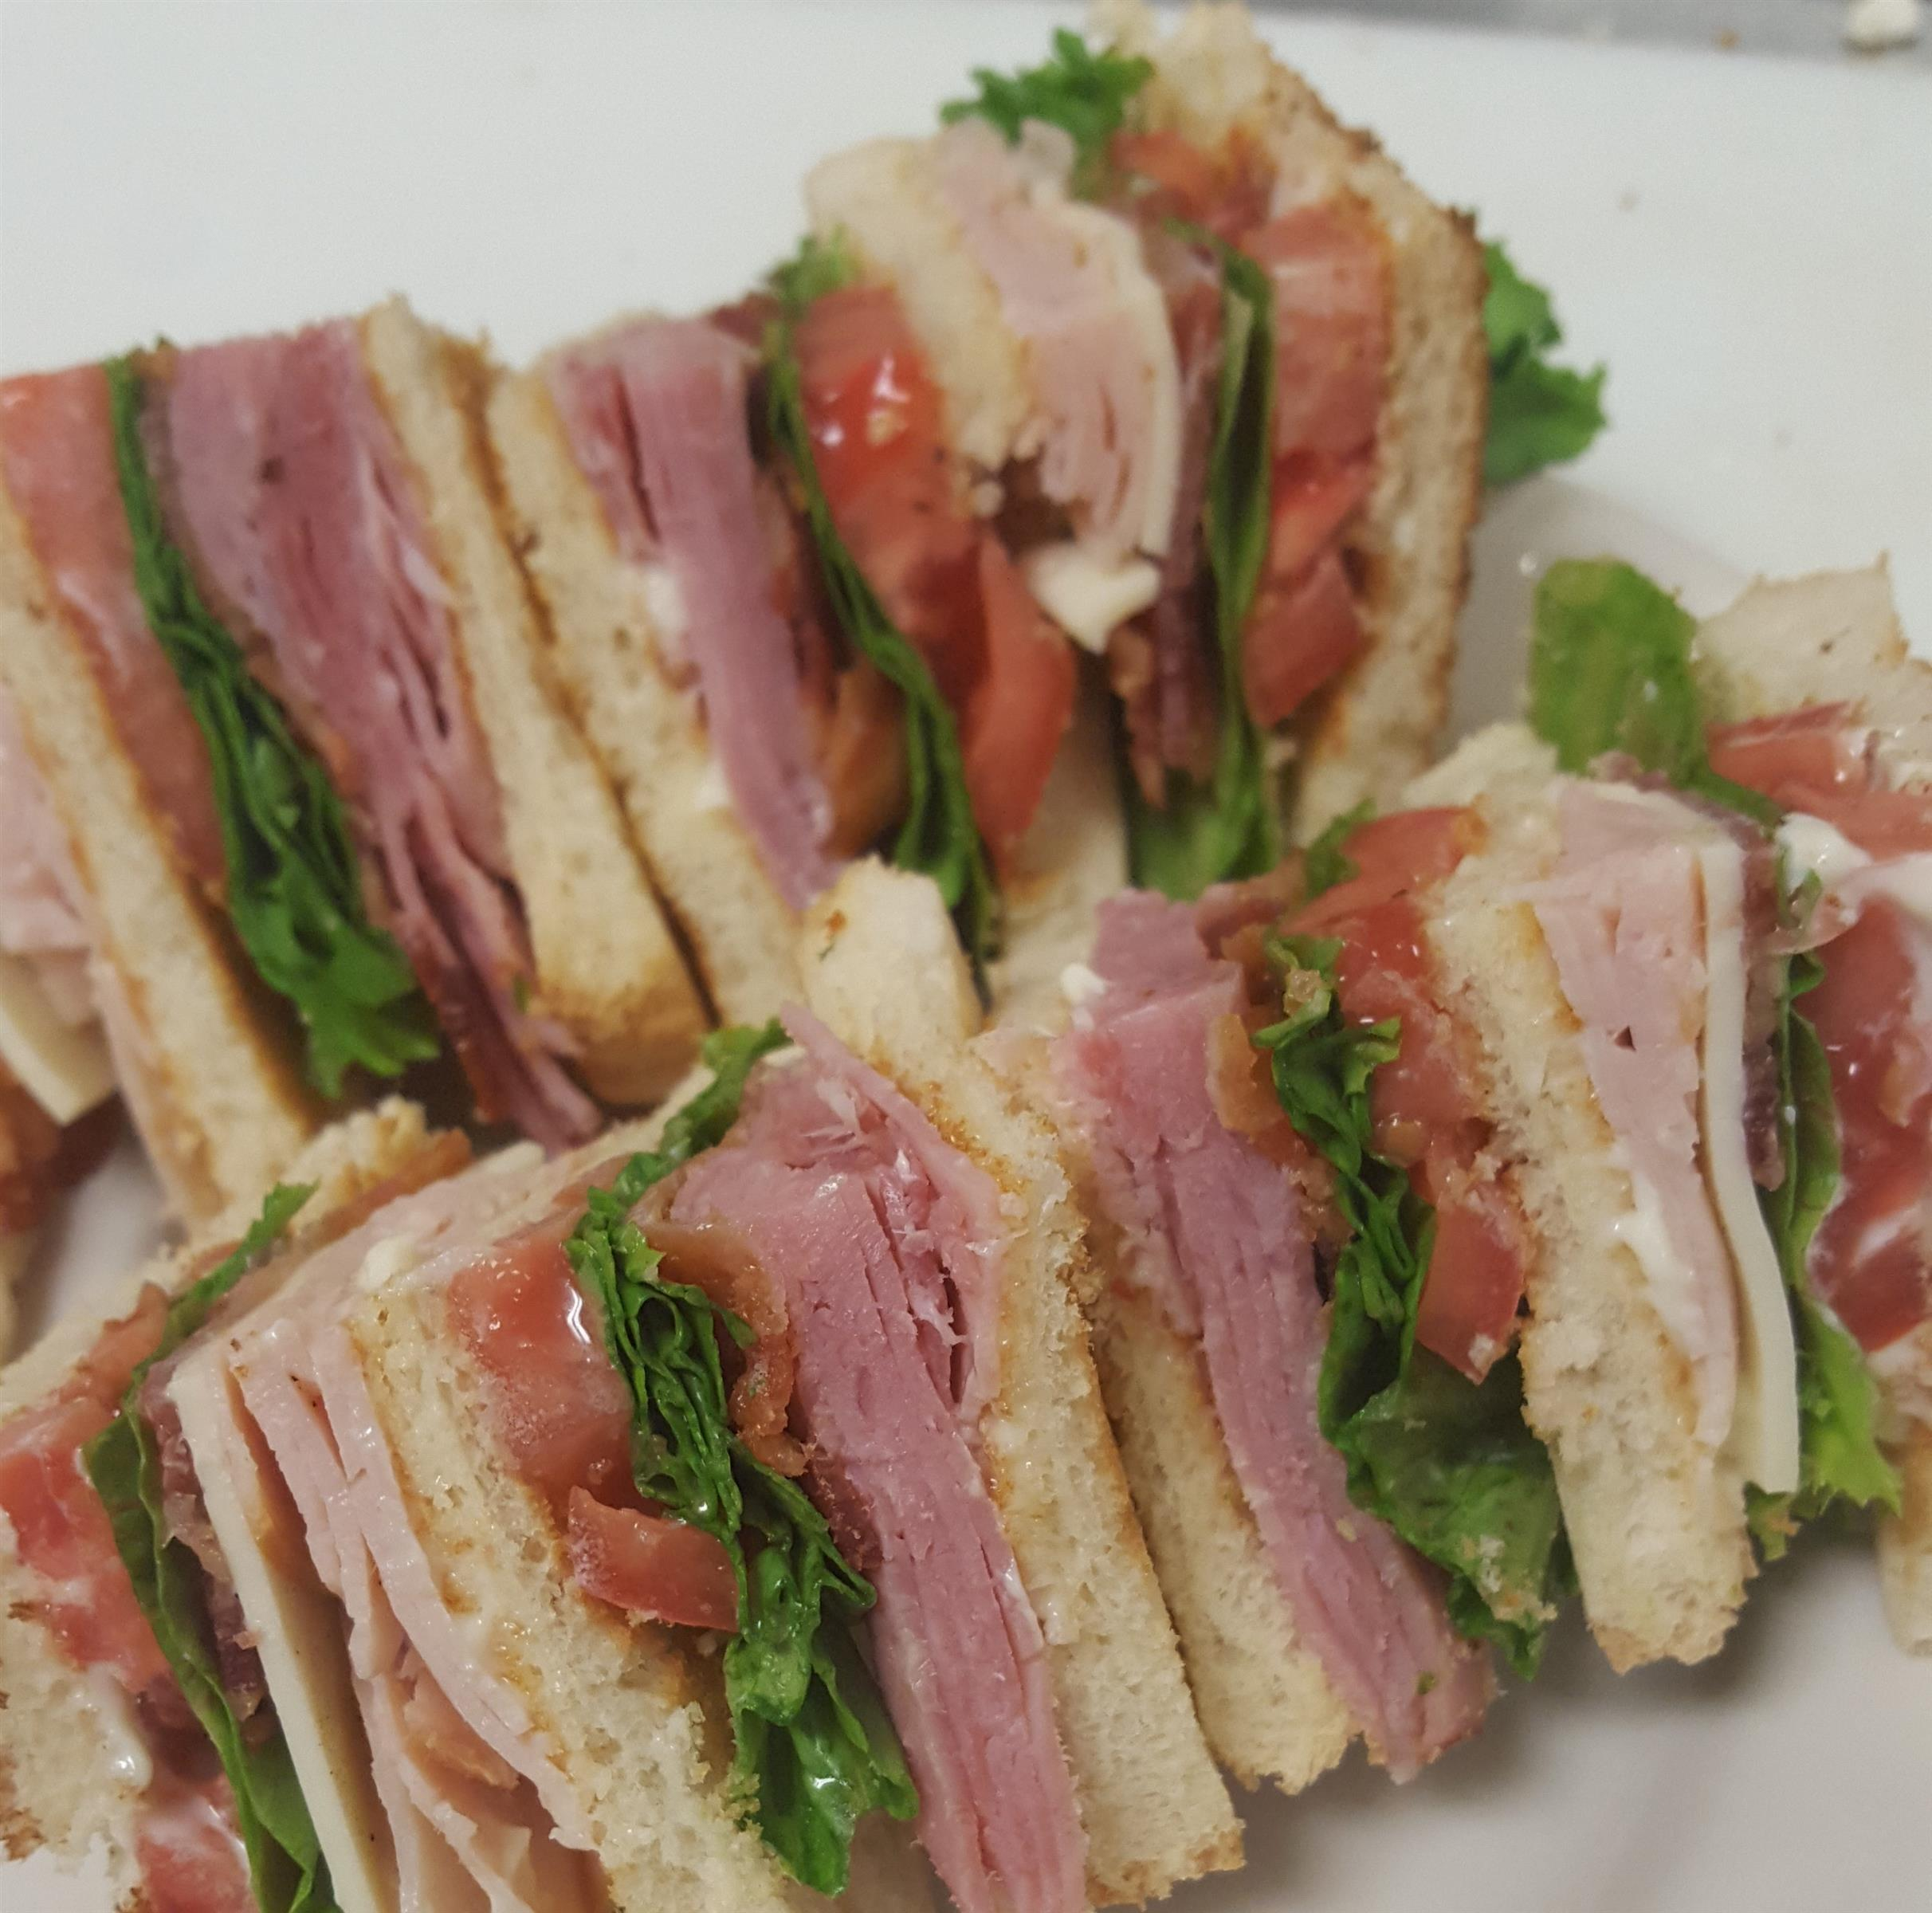 Classic Club sandwiches. Triple decker with shaved ham, smoked turkey, white american cheese, applewood bacon, mayo, green leaf lettuce, and vine ripe tomato.